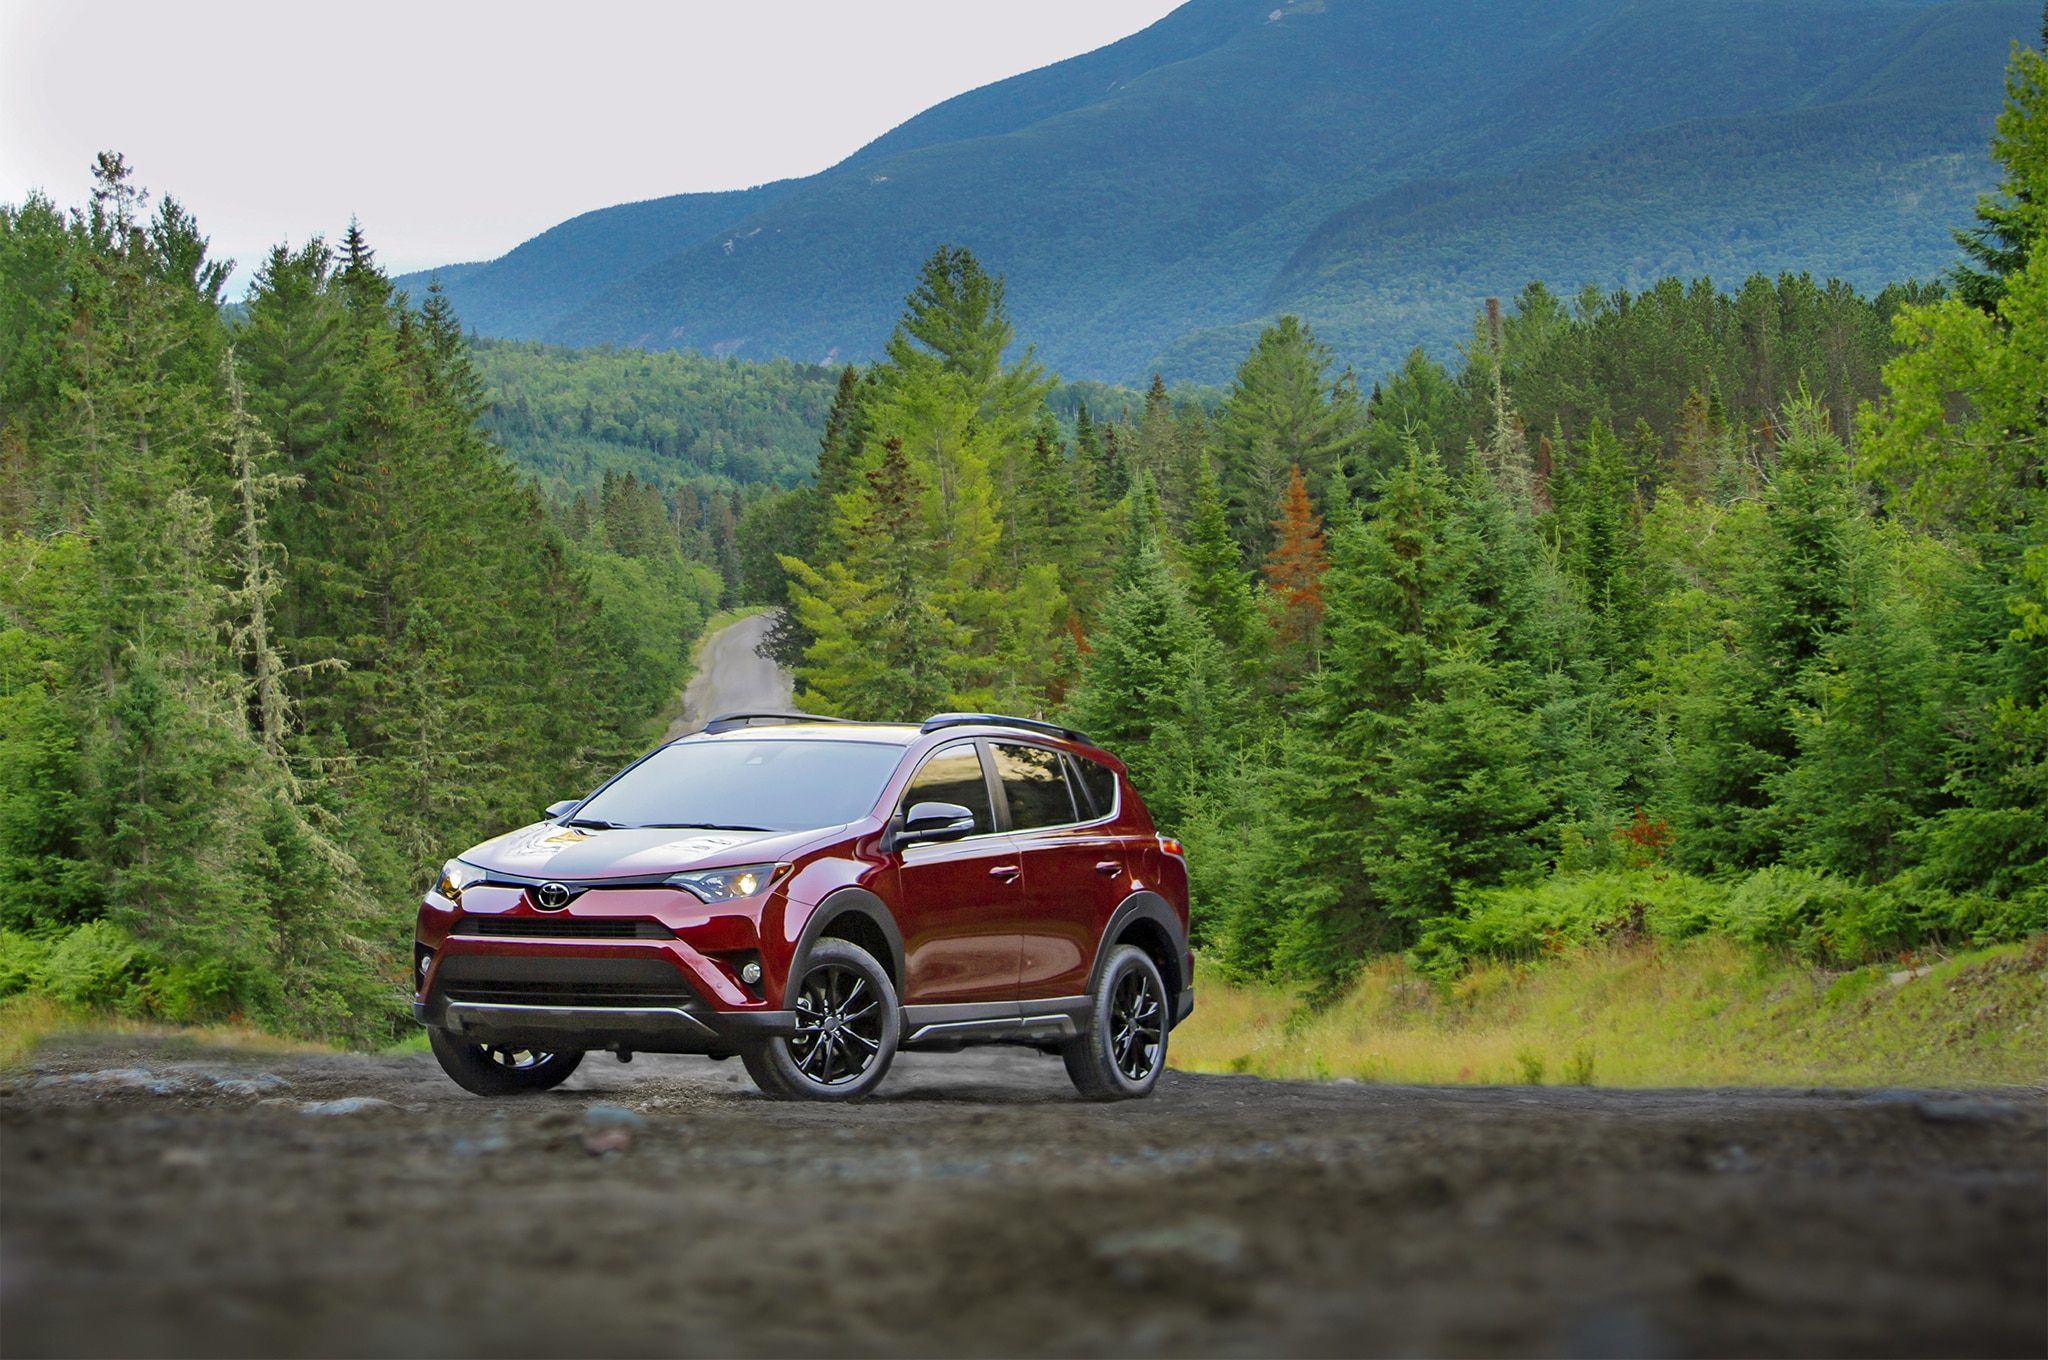 2018 Toyota RAV4 Adventure Front Three Quarter 02 1